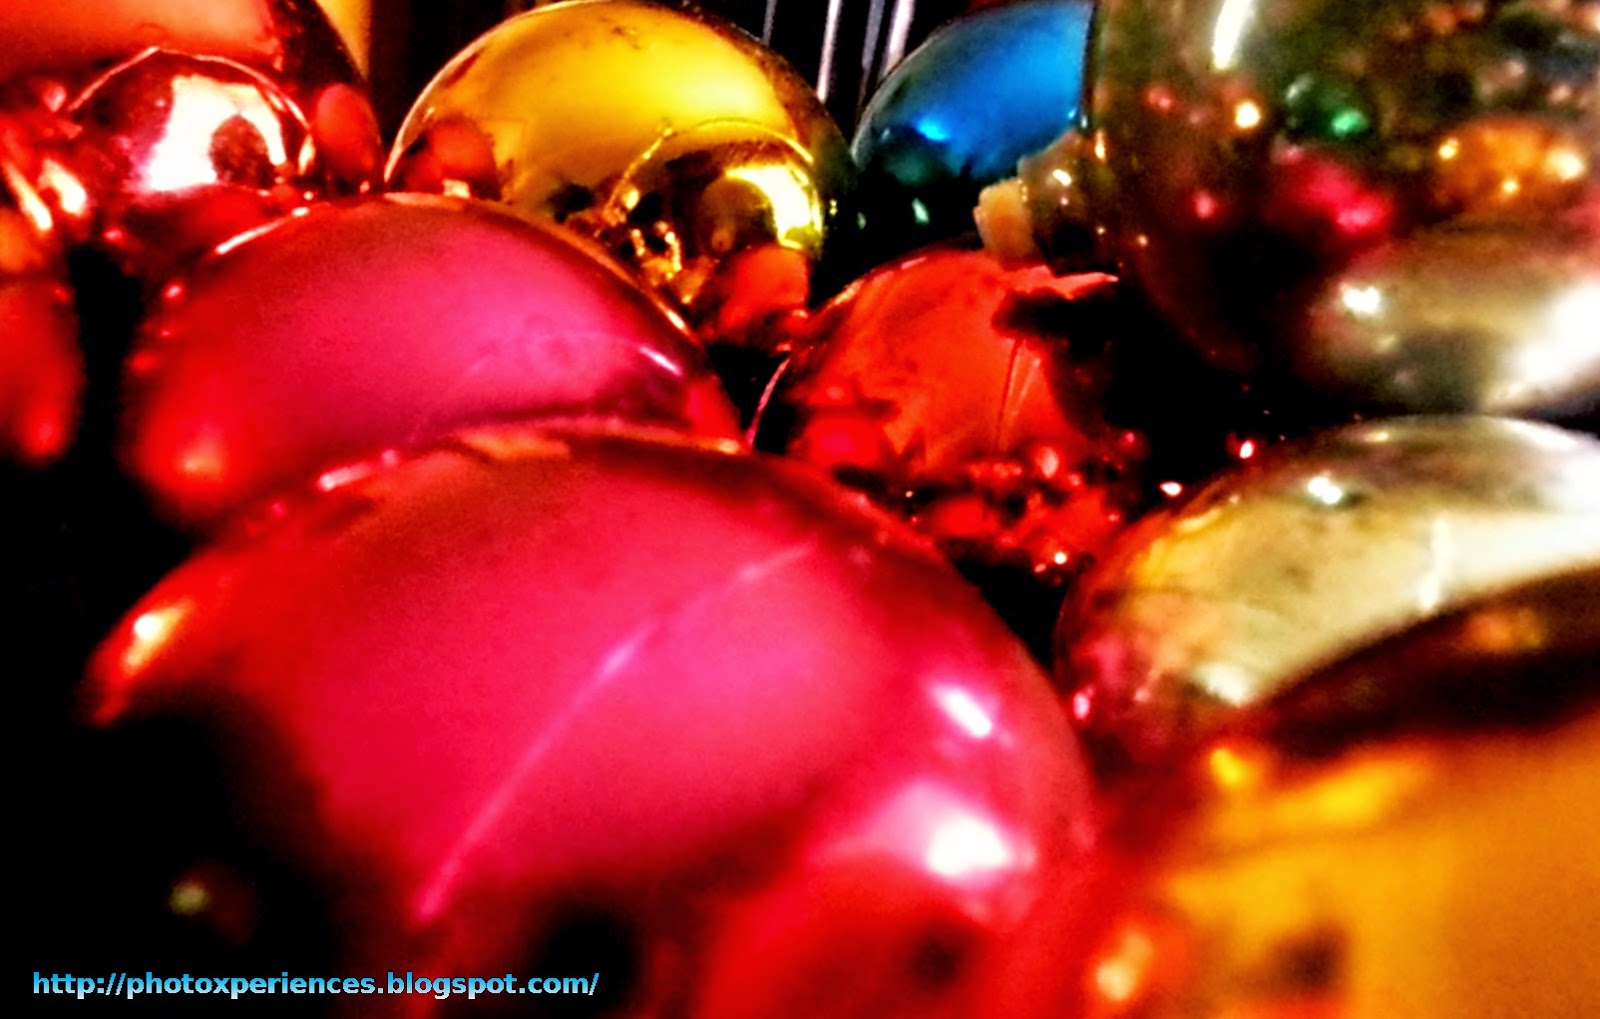 Colored balls - Bolas de colores